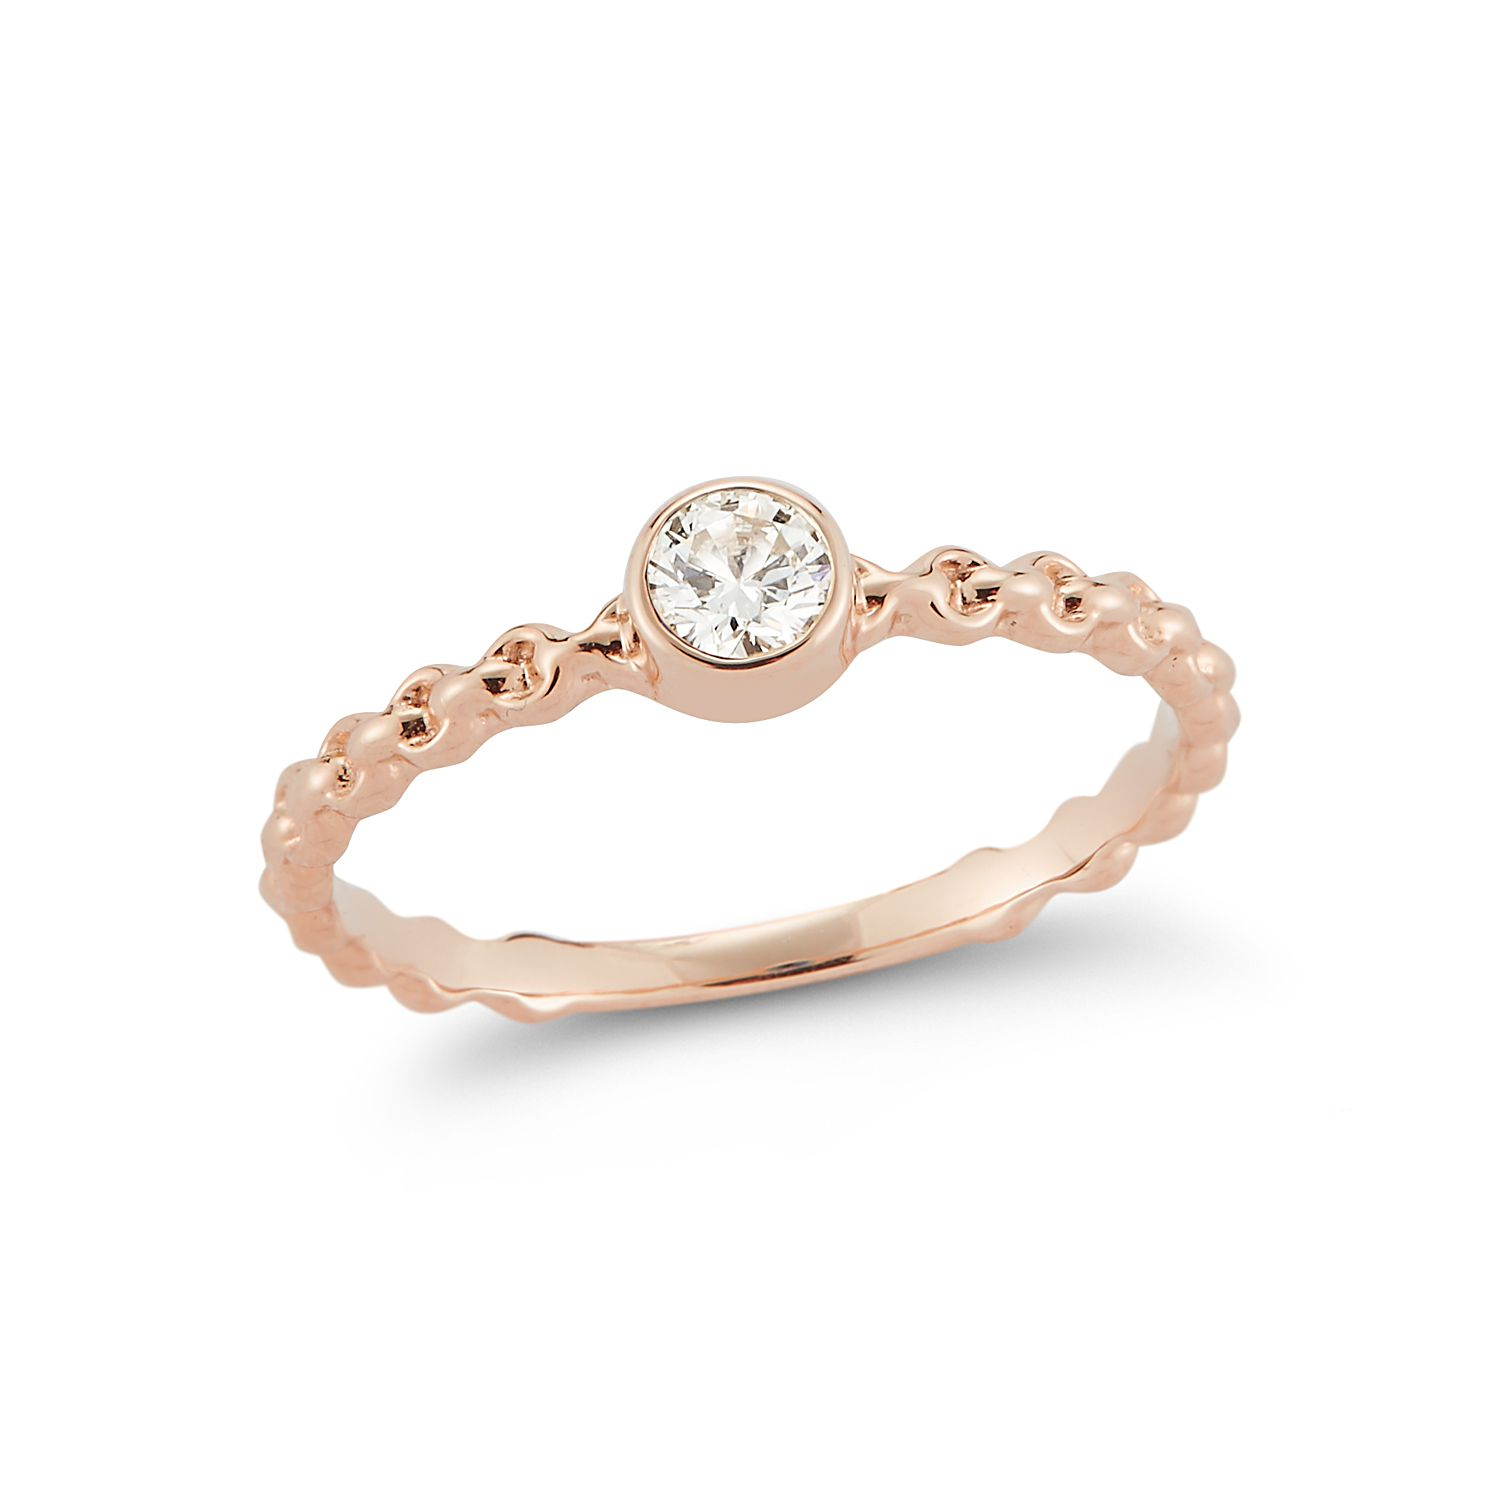 92 Rose Gold Engagement Rings For Every Bridal Style Throughout Most Current Champagne And White Diamond Quilted Anniversary Rings In White Gold (View 17 of 25)